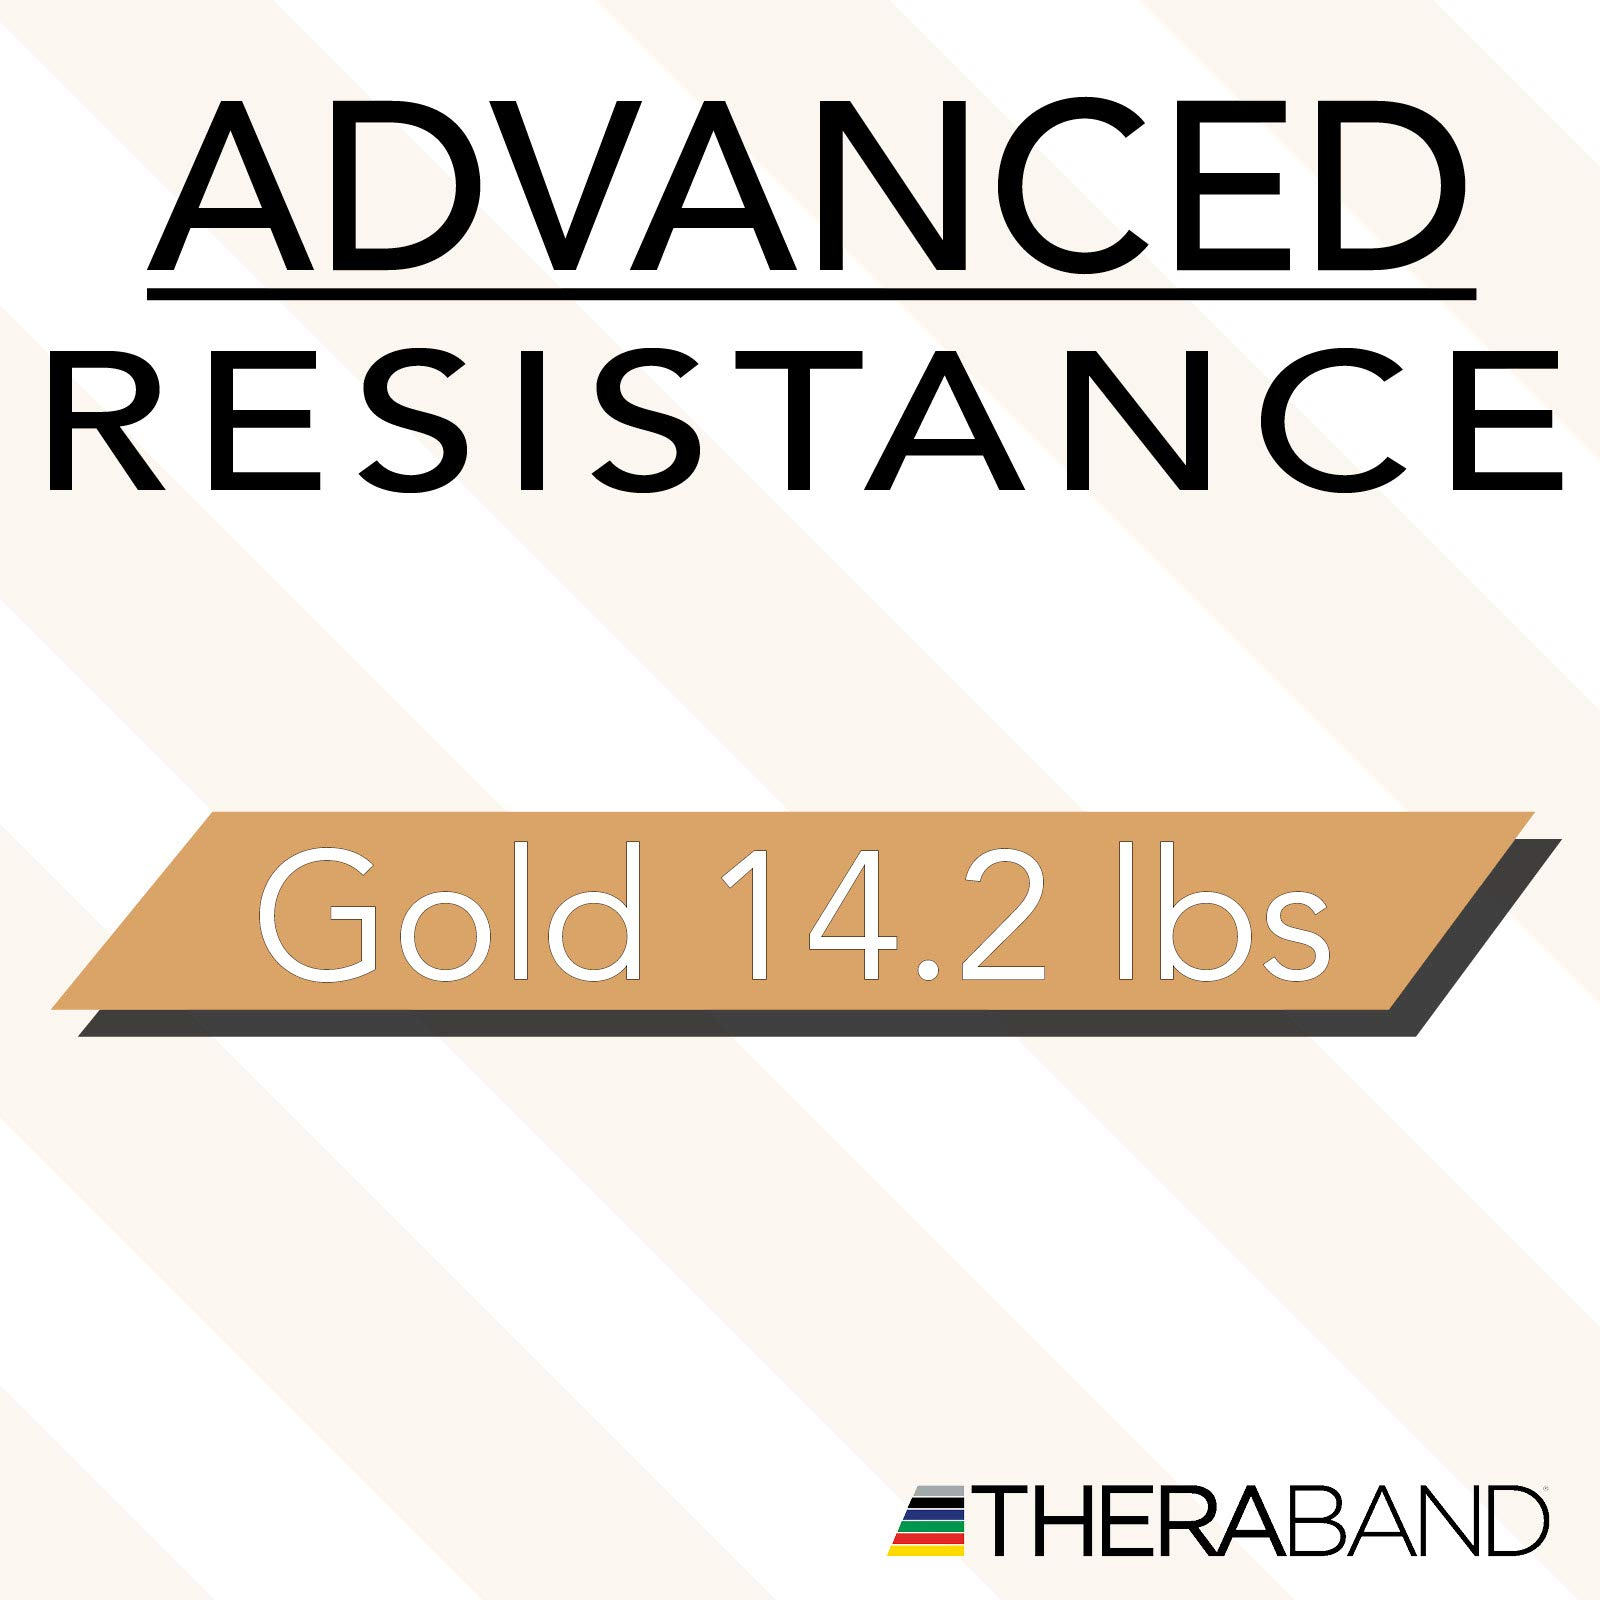 TheraBand Resistance Bands, 6 Yard Roll Professional Latex Elastic Band For Upper Body, Lower Body, & Core Exercise, Physical Therapy, Pilates, At-Home Workouts, & Rehab, Gold, Max, Elite by TheraBand (Image #10)